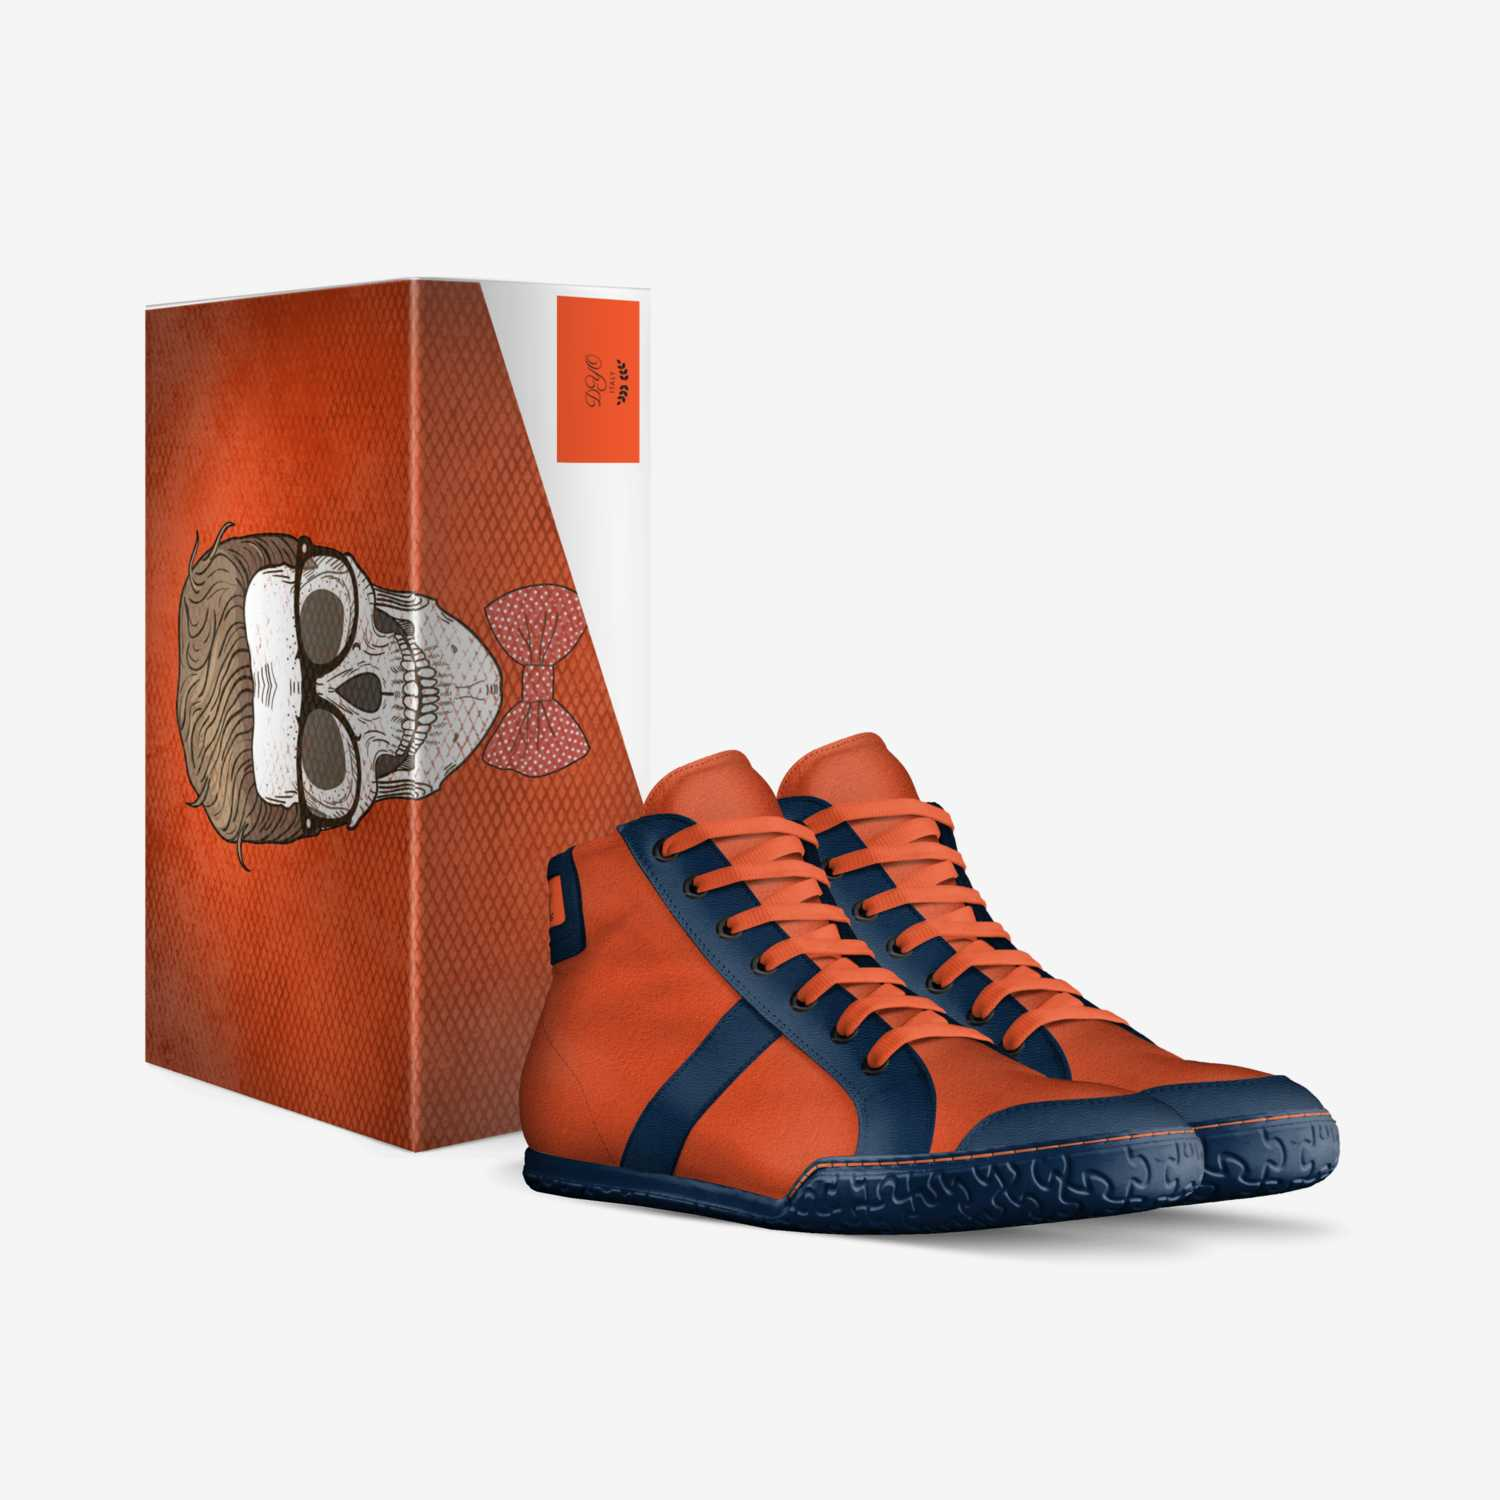 DY100 custom made in Italy shoes by Darryl Nealy | Box view